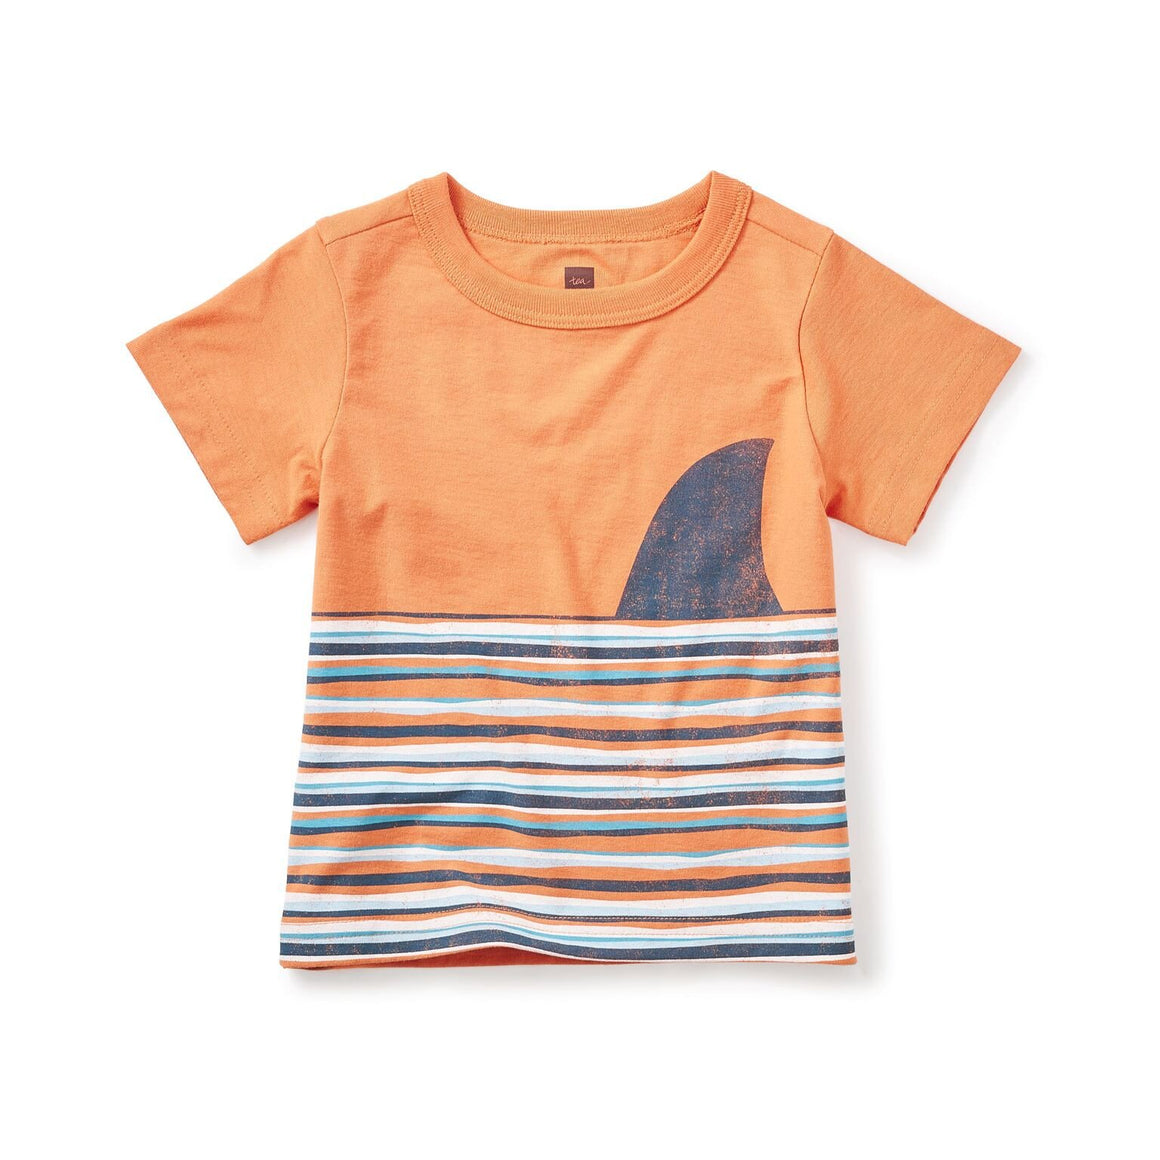 Tea Collection Fin Graphic Tee, Orchard